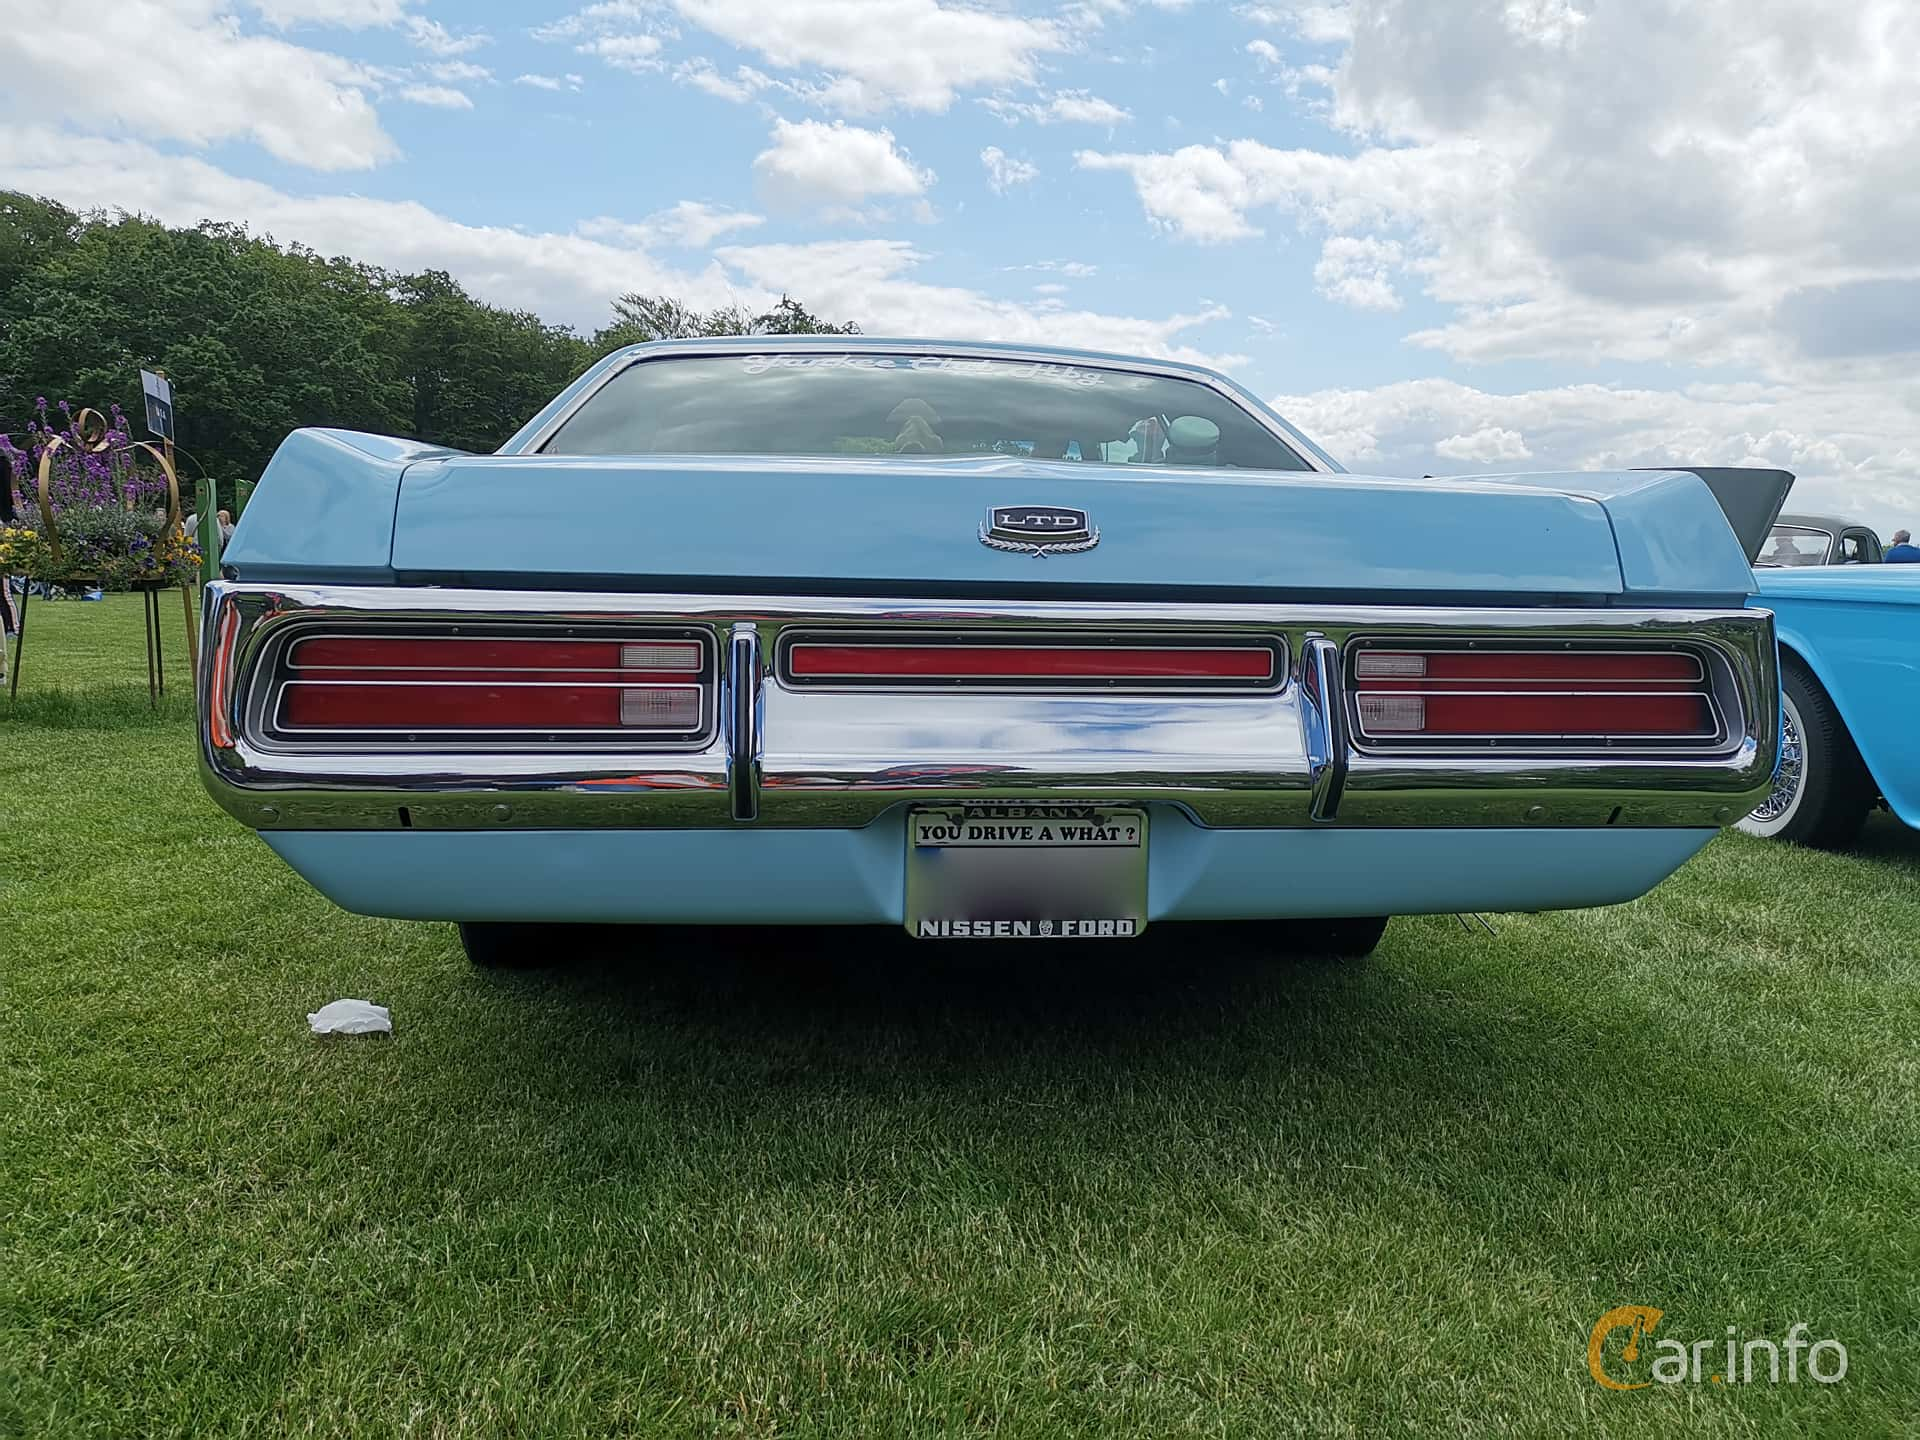 Ford LTD Brougham 2-door Hardtop 7.0 V8 Automatic, 215hp, 1972 at Sofiero Classic 2019